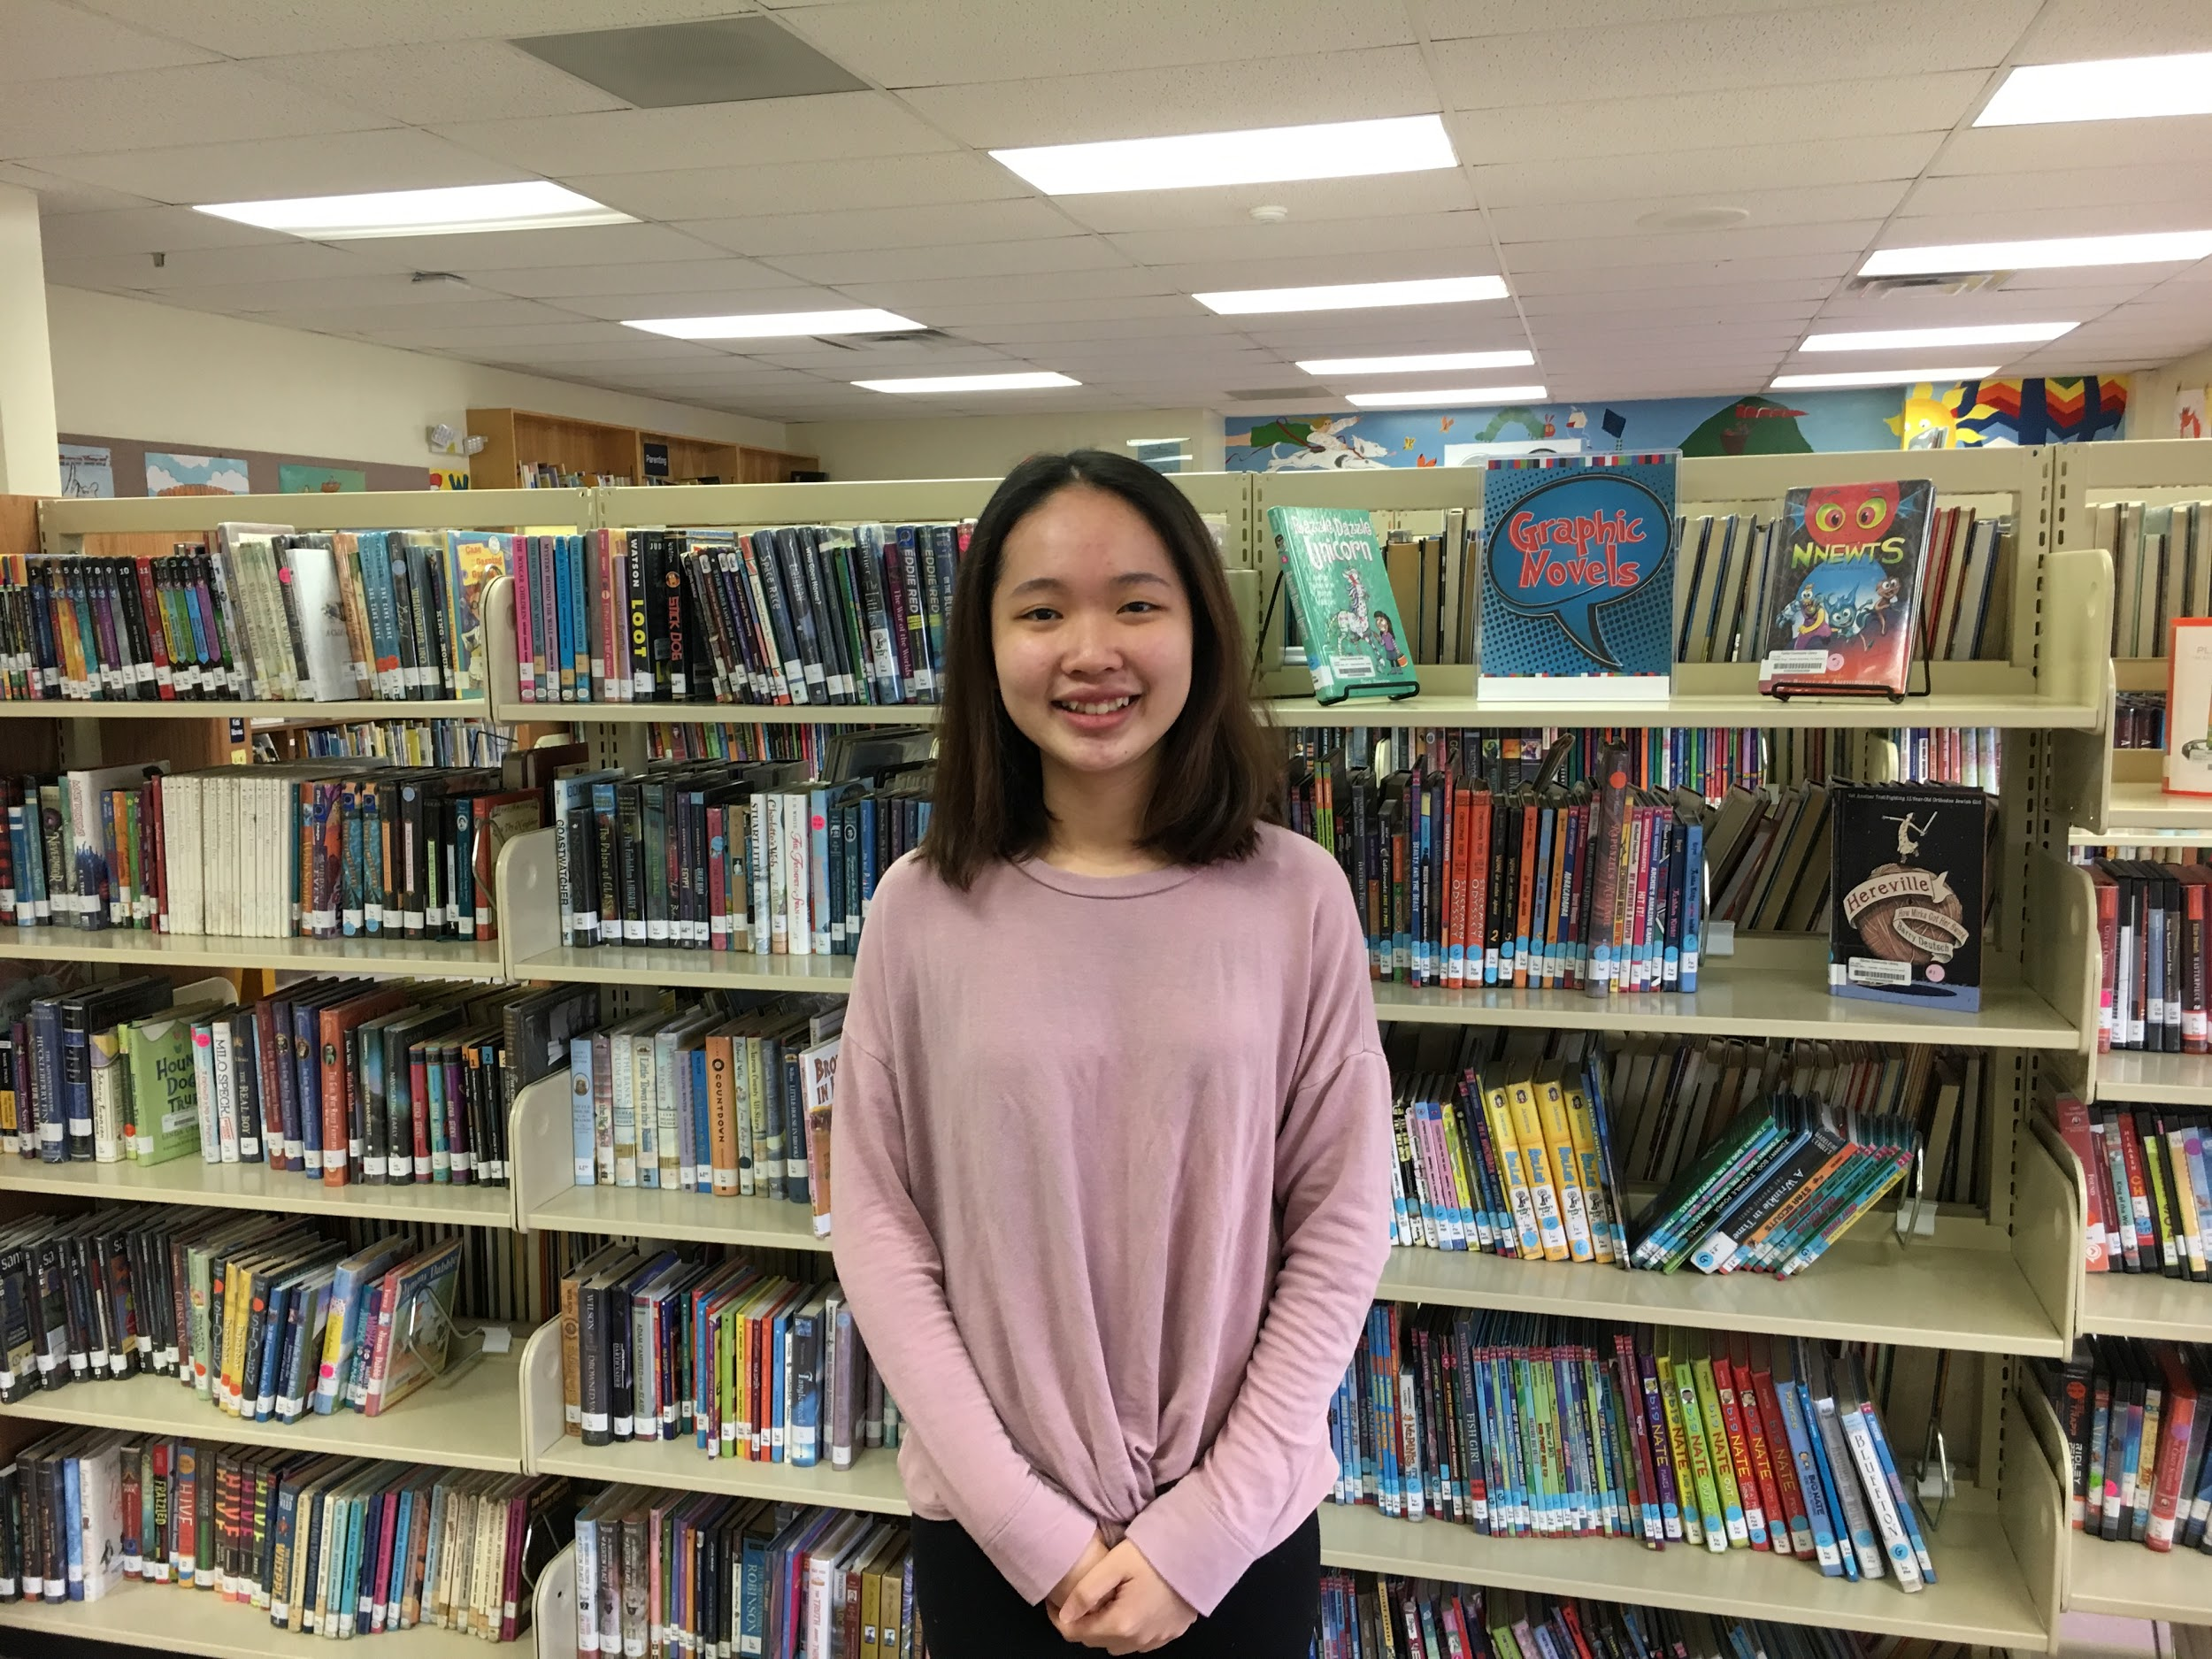 Minh Thu is a senior at BFA Fairfax this year through the Immigration I-20 program.